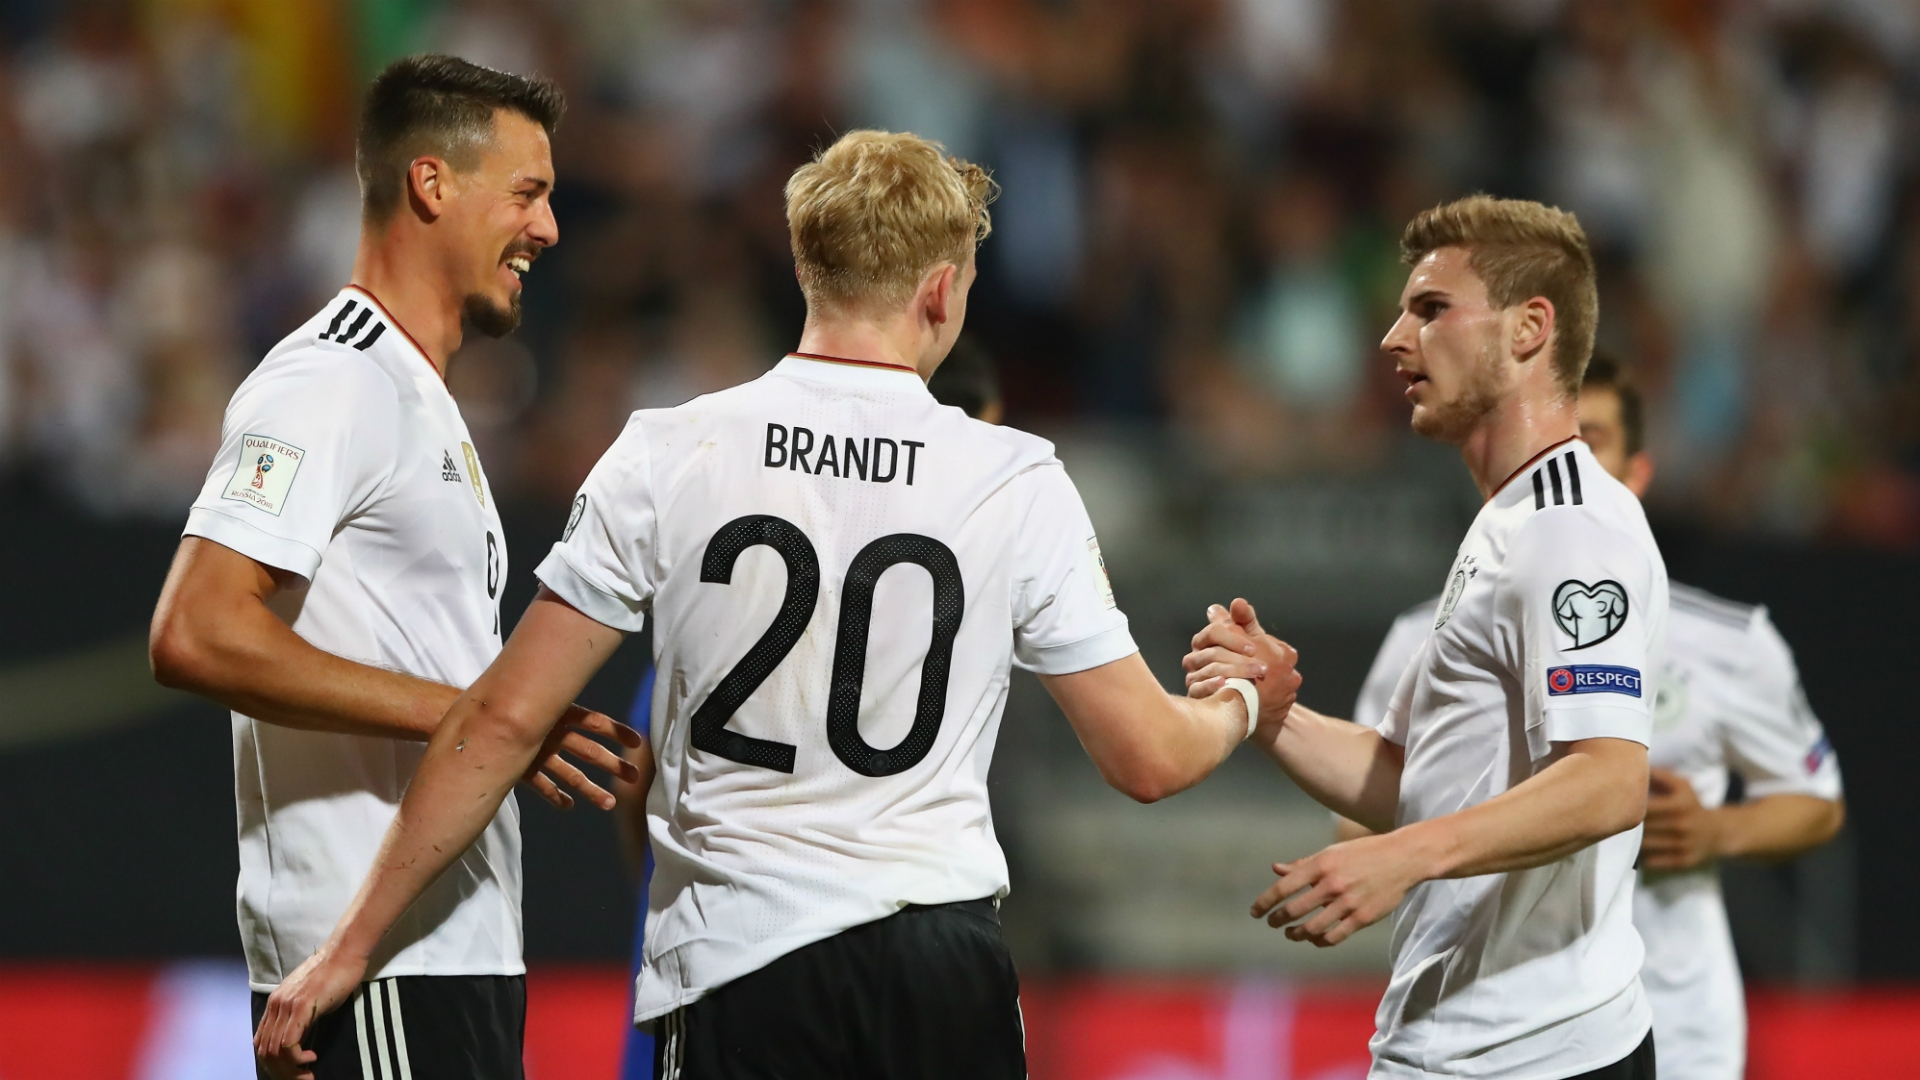 Germany's team selection has favored, for the most part, young players.